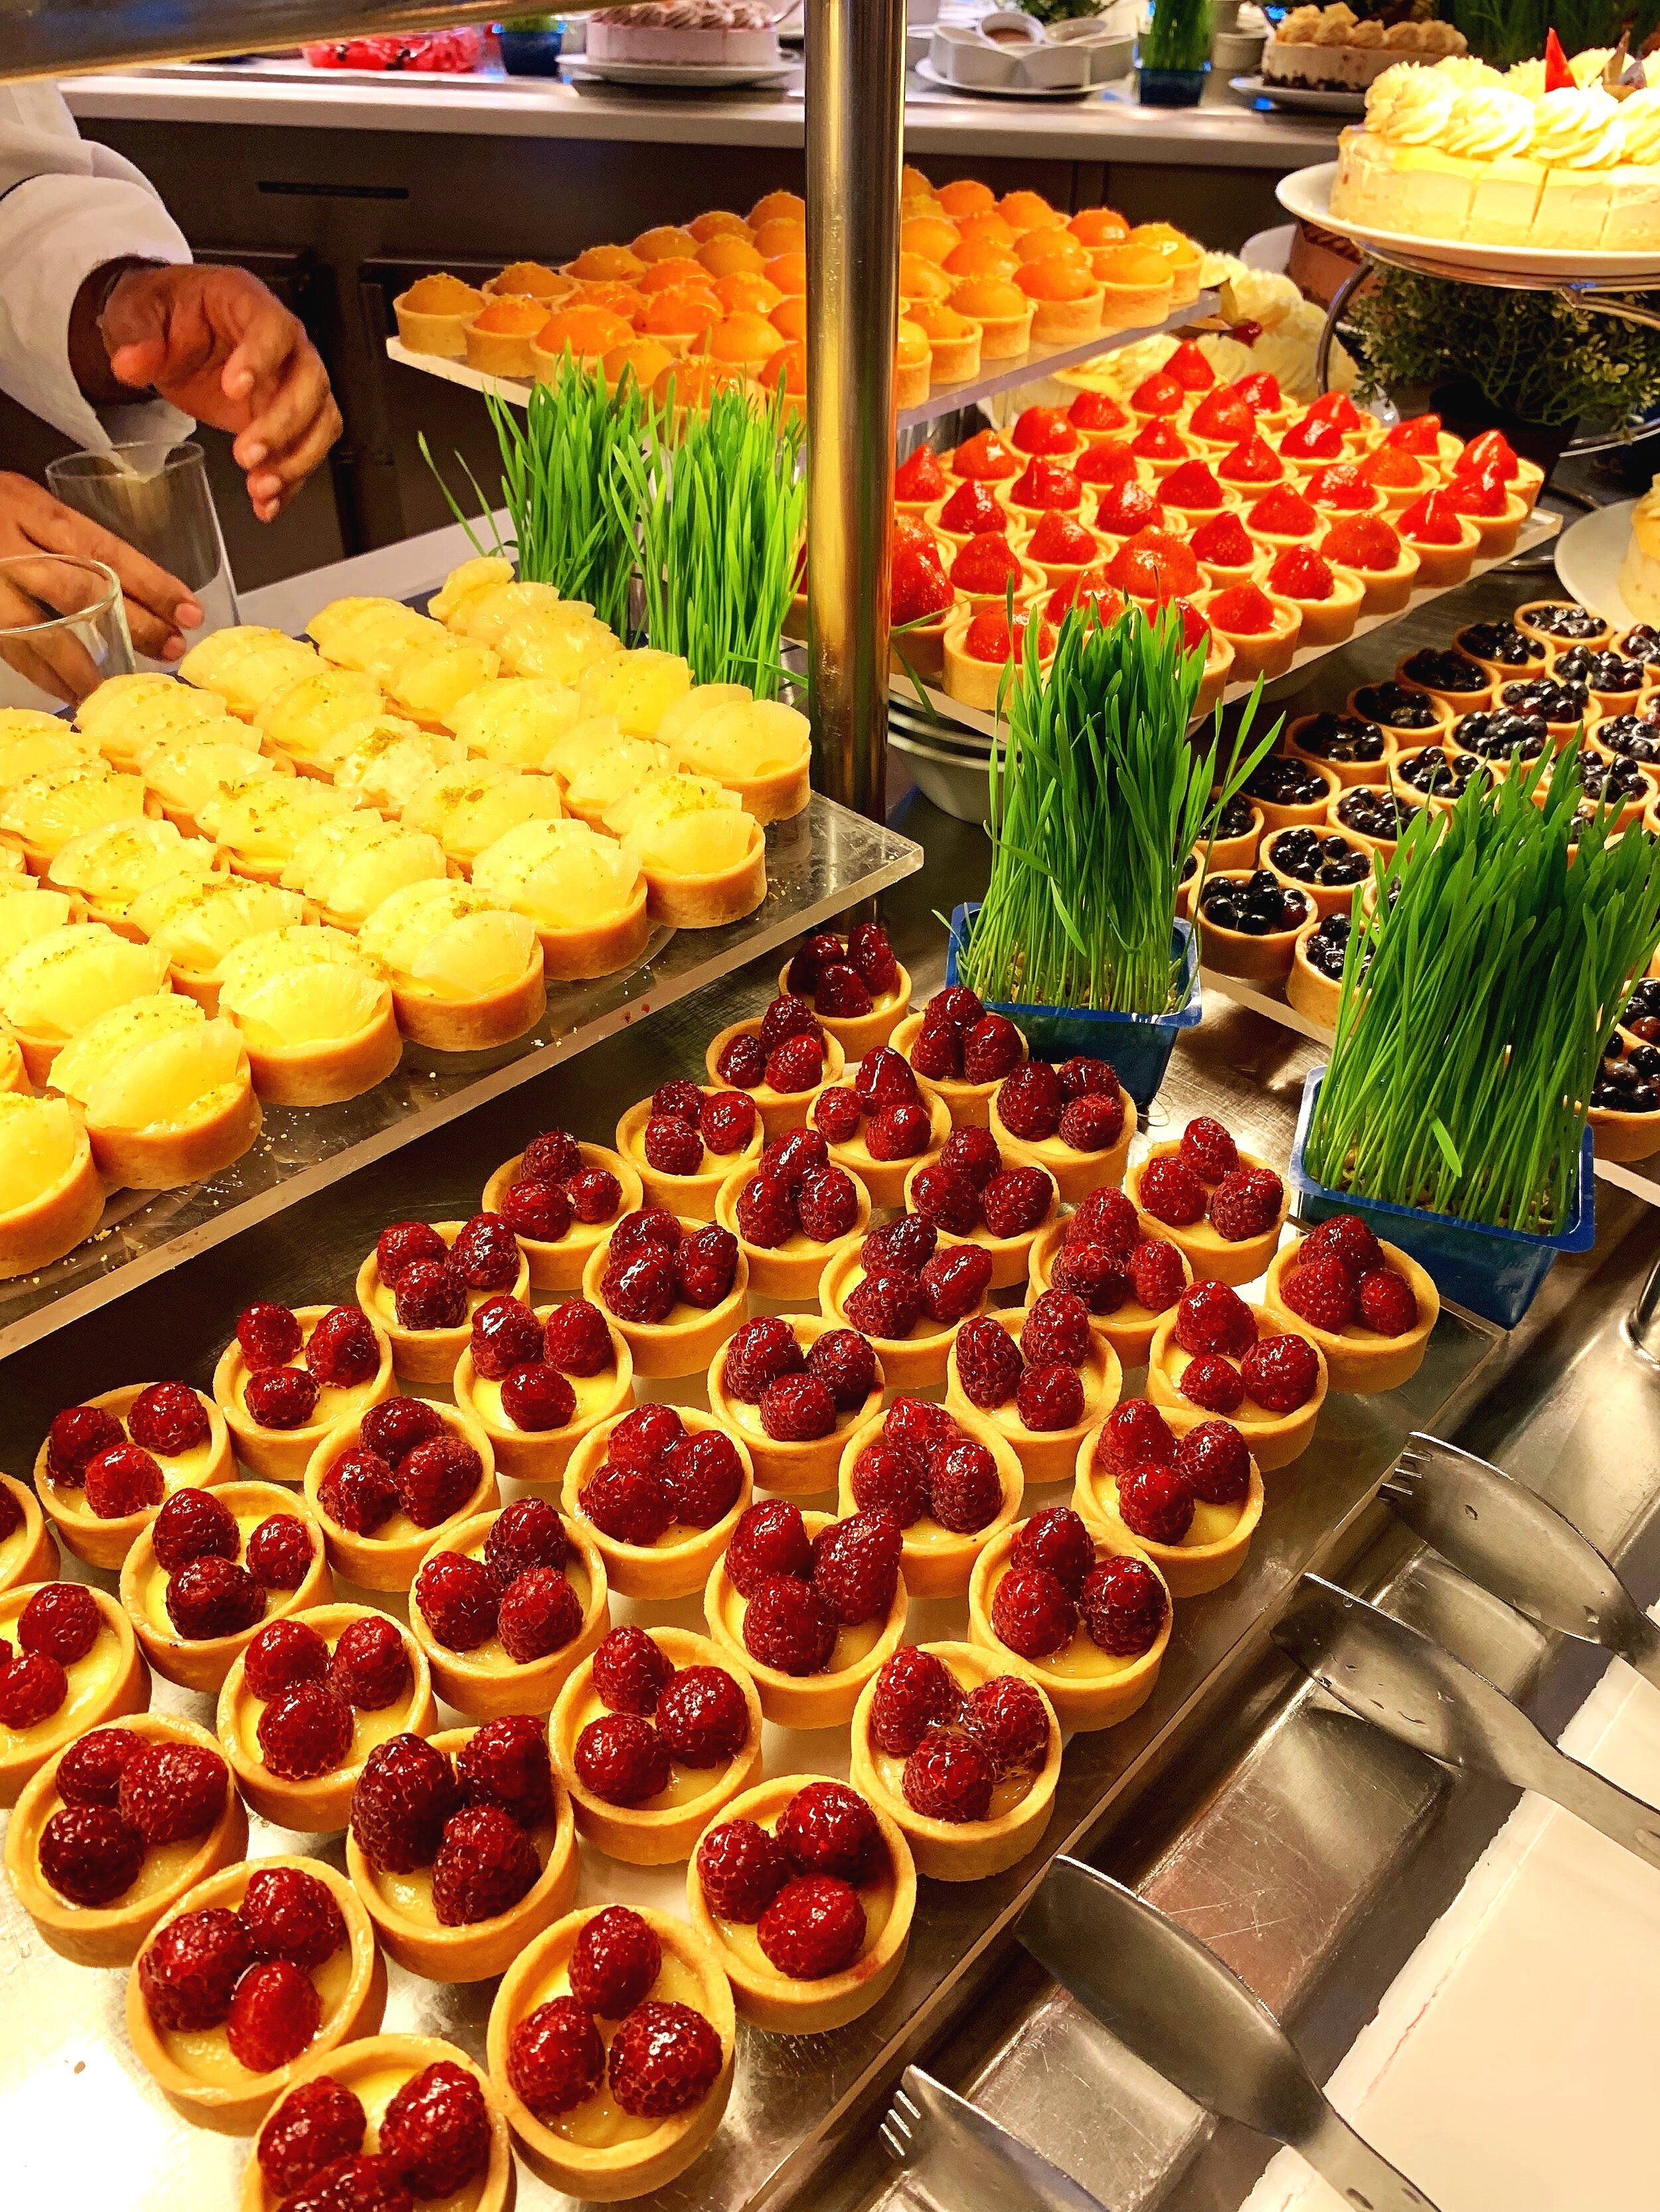 Featuring the work of some talented patisserie chefs.